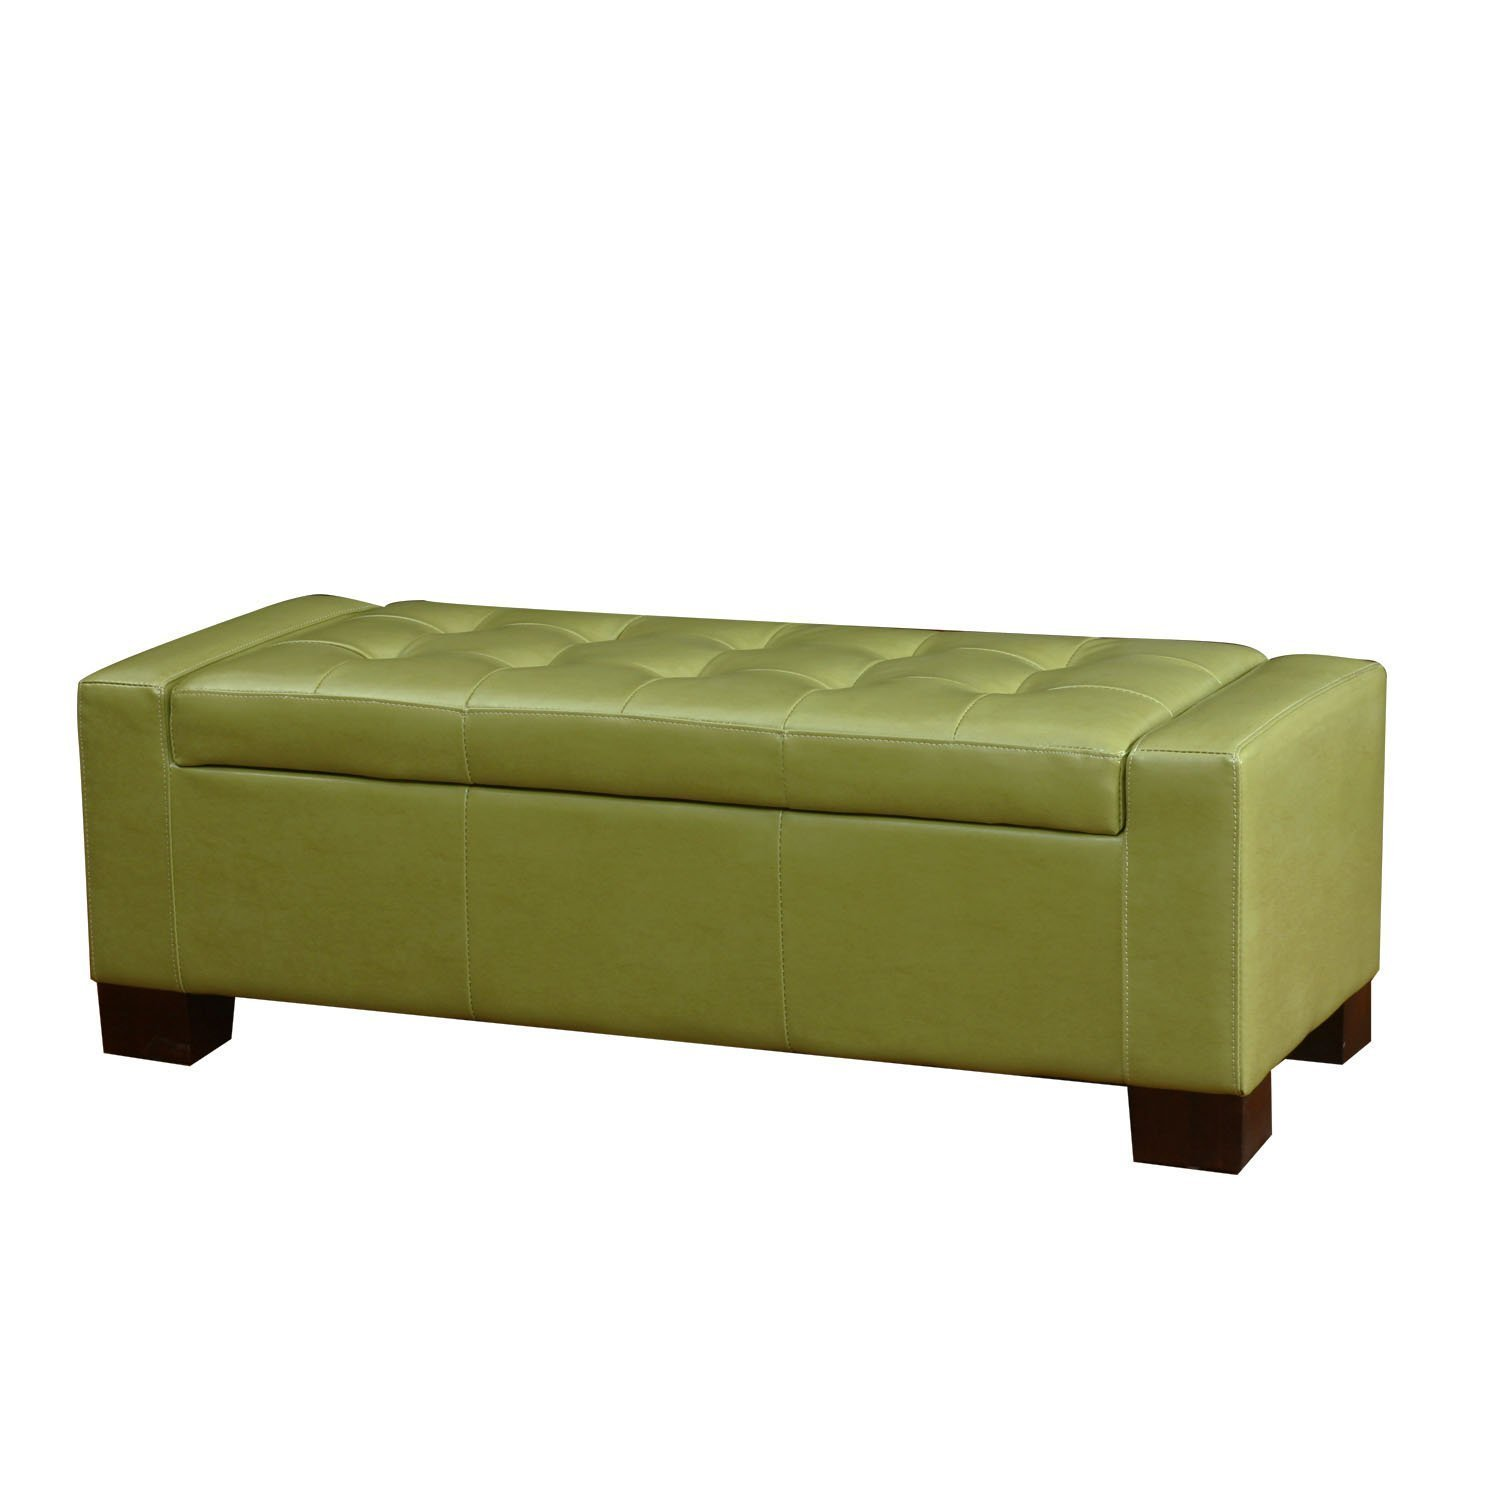 ELEGAN Bonded Leather Tufted Accents Rectangular Storage Bench Ottoman